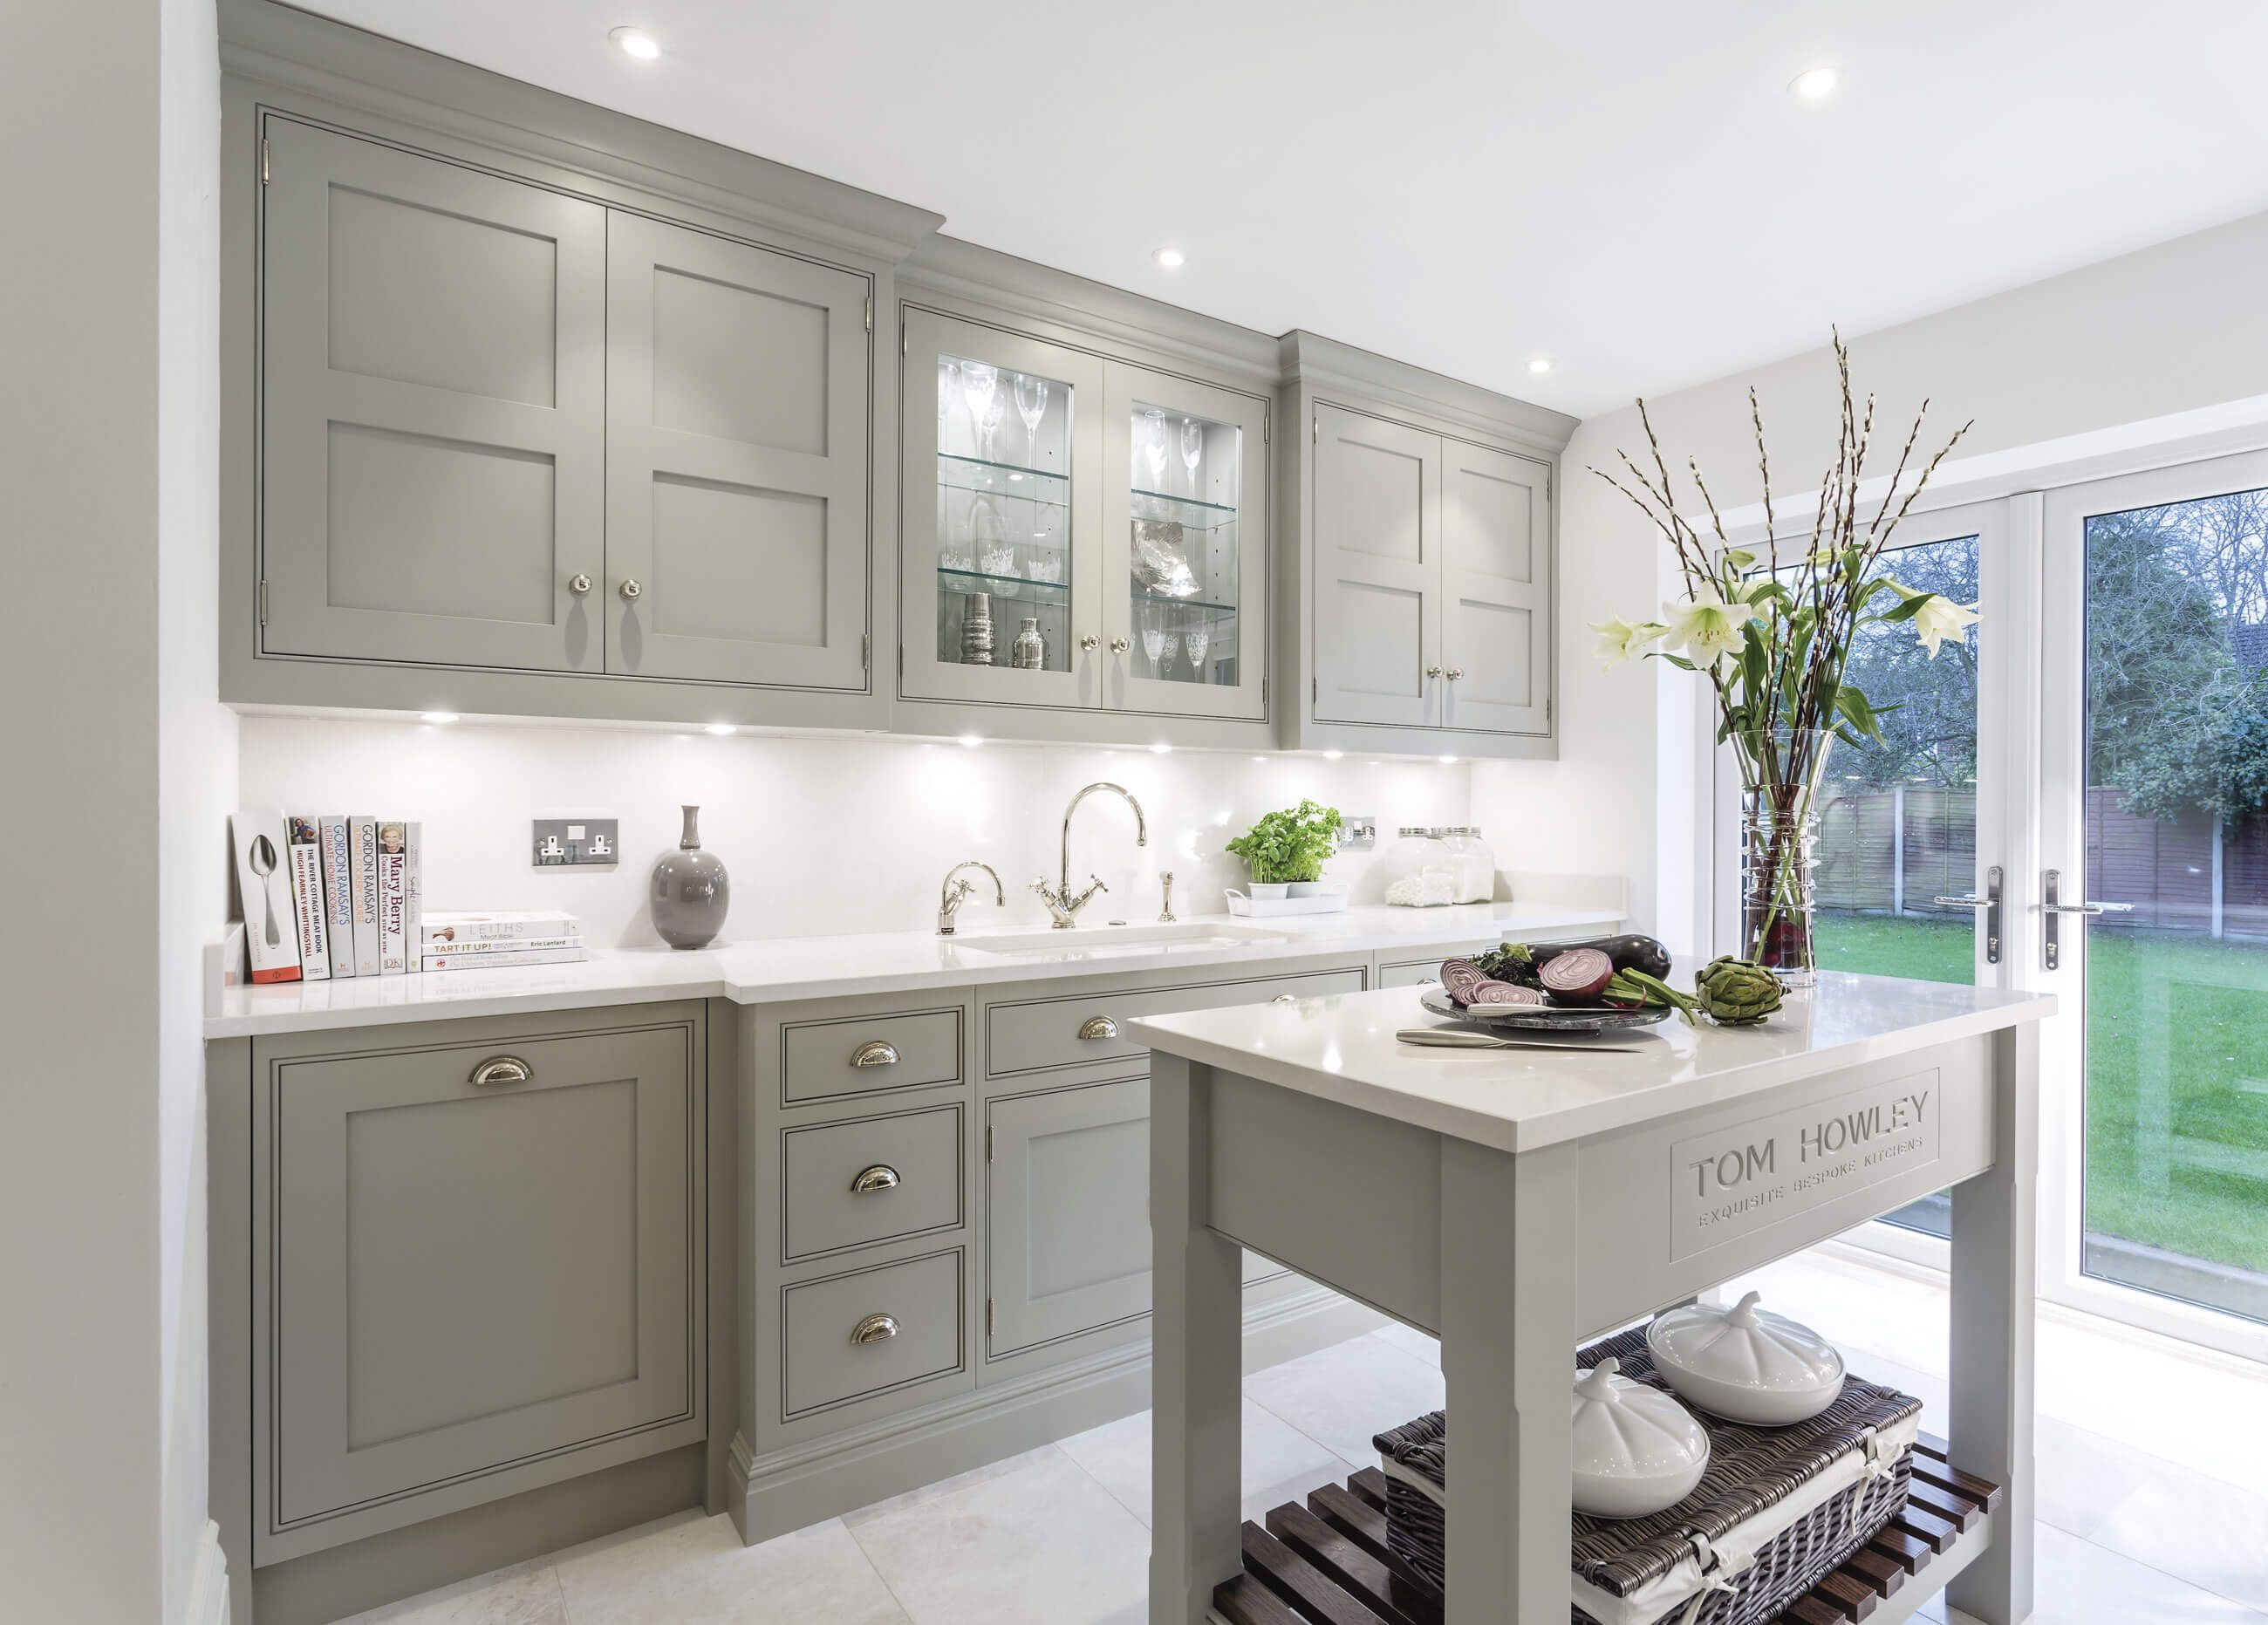 This Shaker Style Kitchen Diner Design Is The Perfect Entertaining Prepossessing Designing The Perfect Kitchen Review